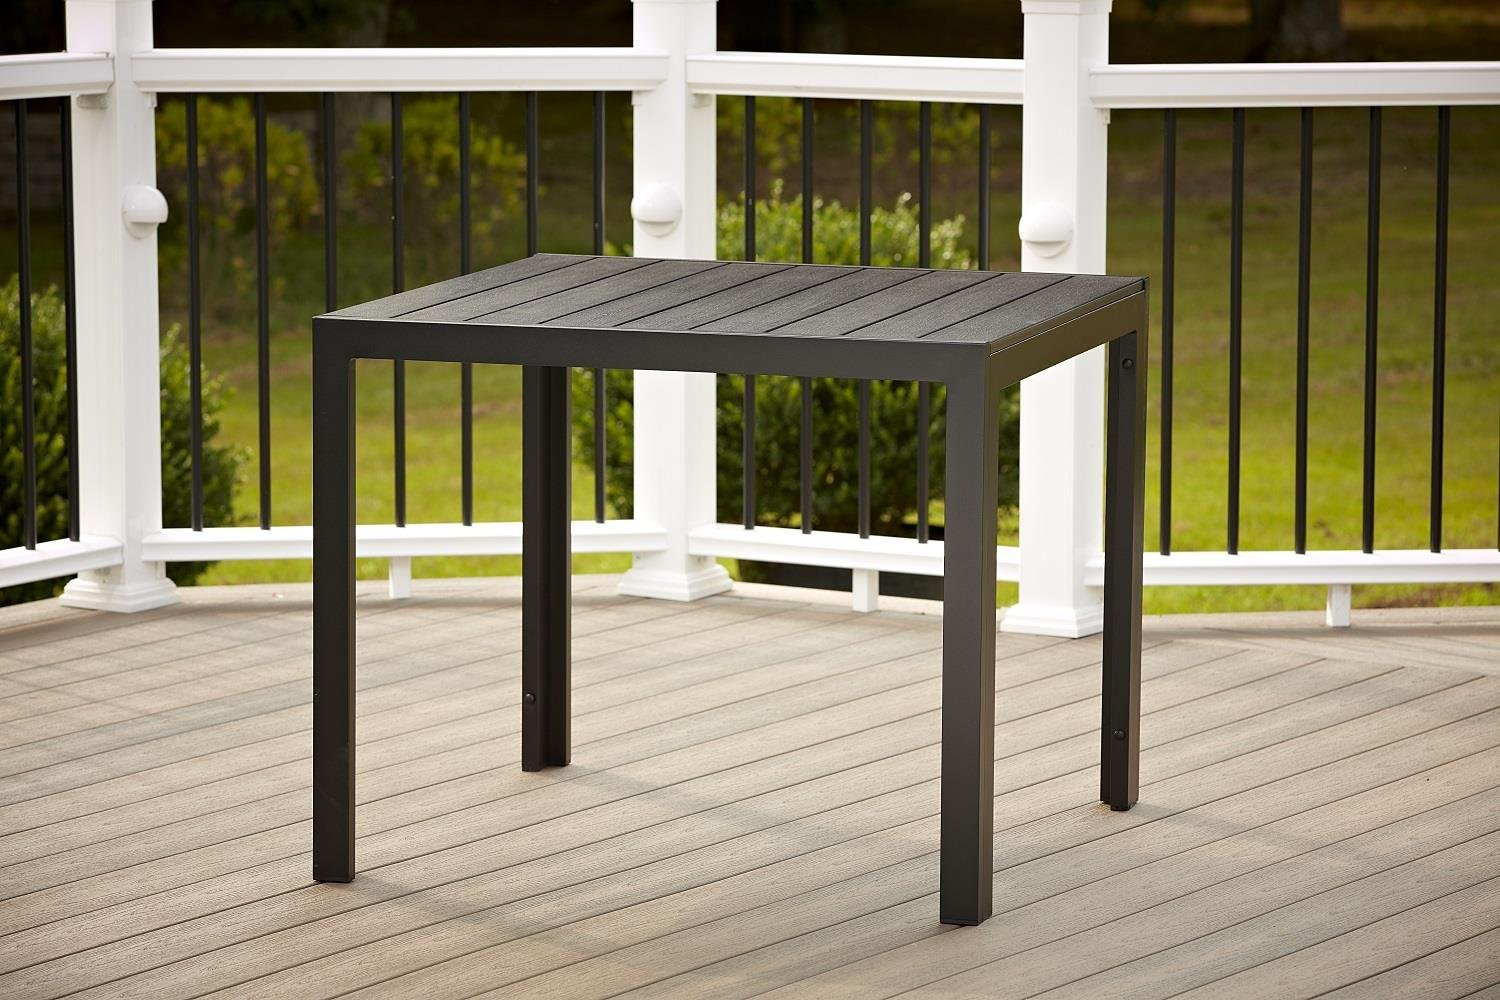 Cosco Outdoor Resin Slat, Square Dining Table, 35.4 by 35.4-Inch